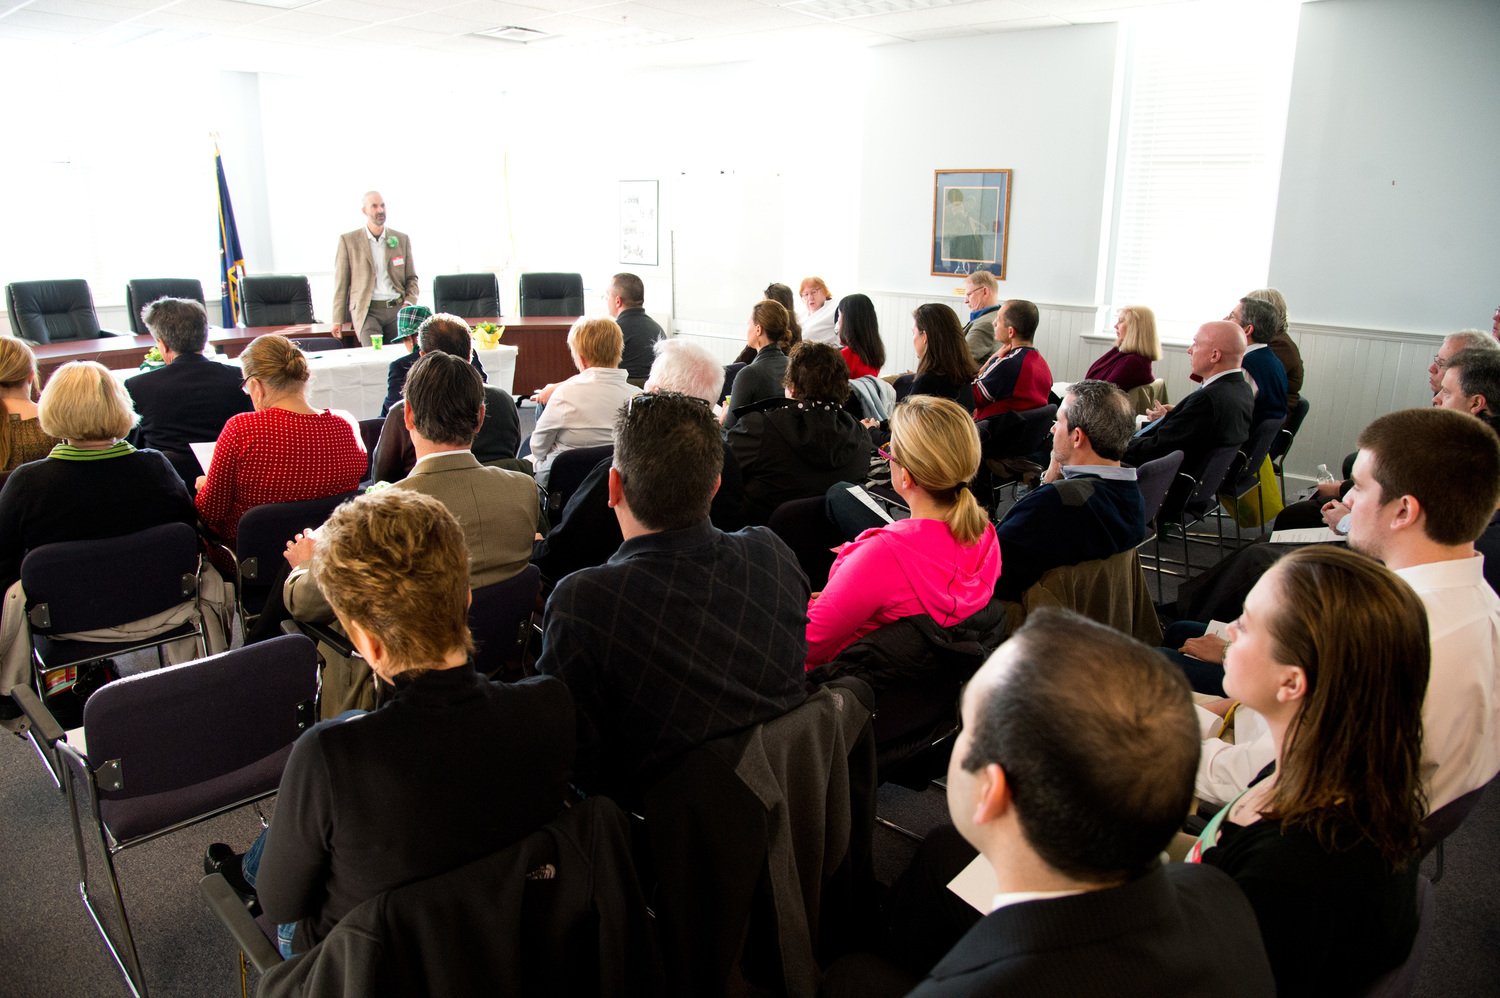 meet our members malvern business professional association malvern business professional association